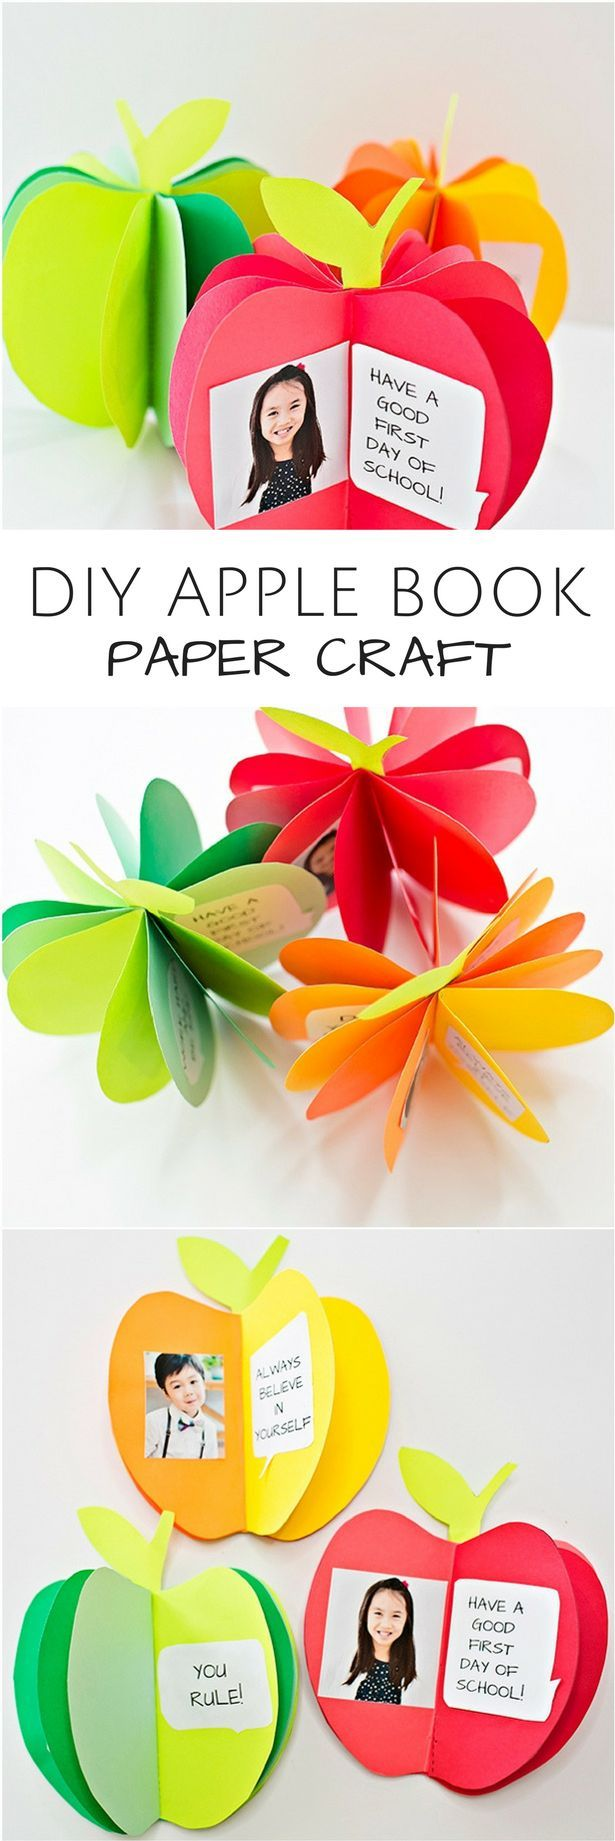 Make A 3d Paper Apple Book Craft Back To School Crafts For Kids School Crafts Kids Art Projects